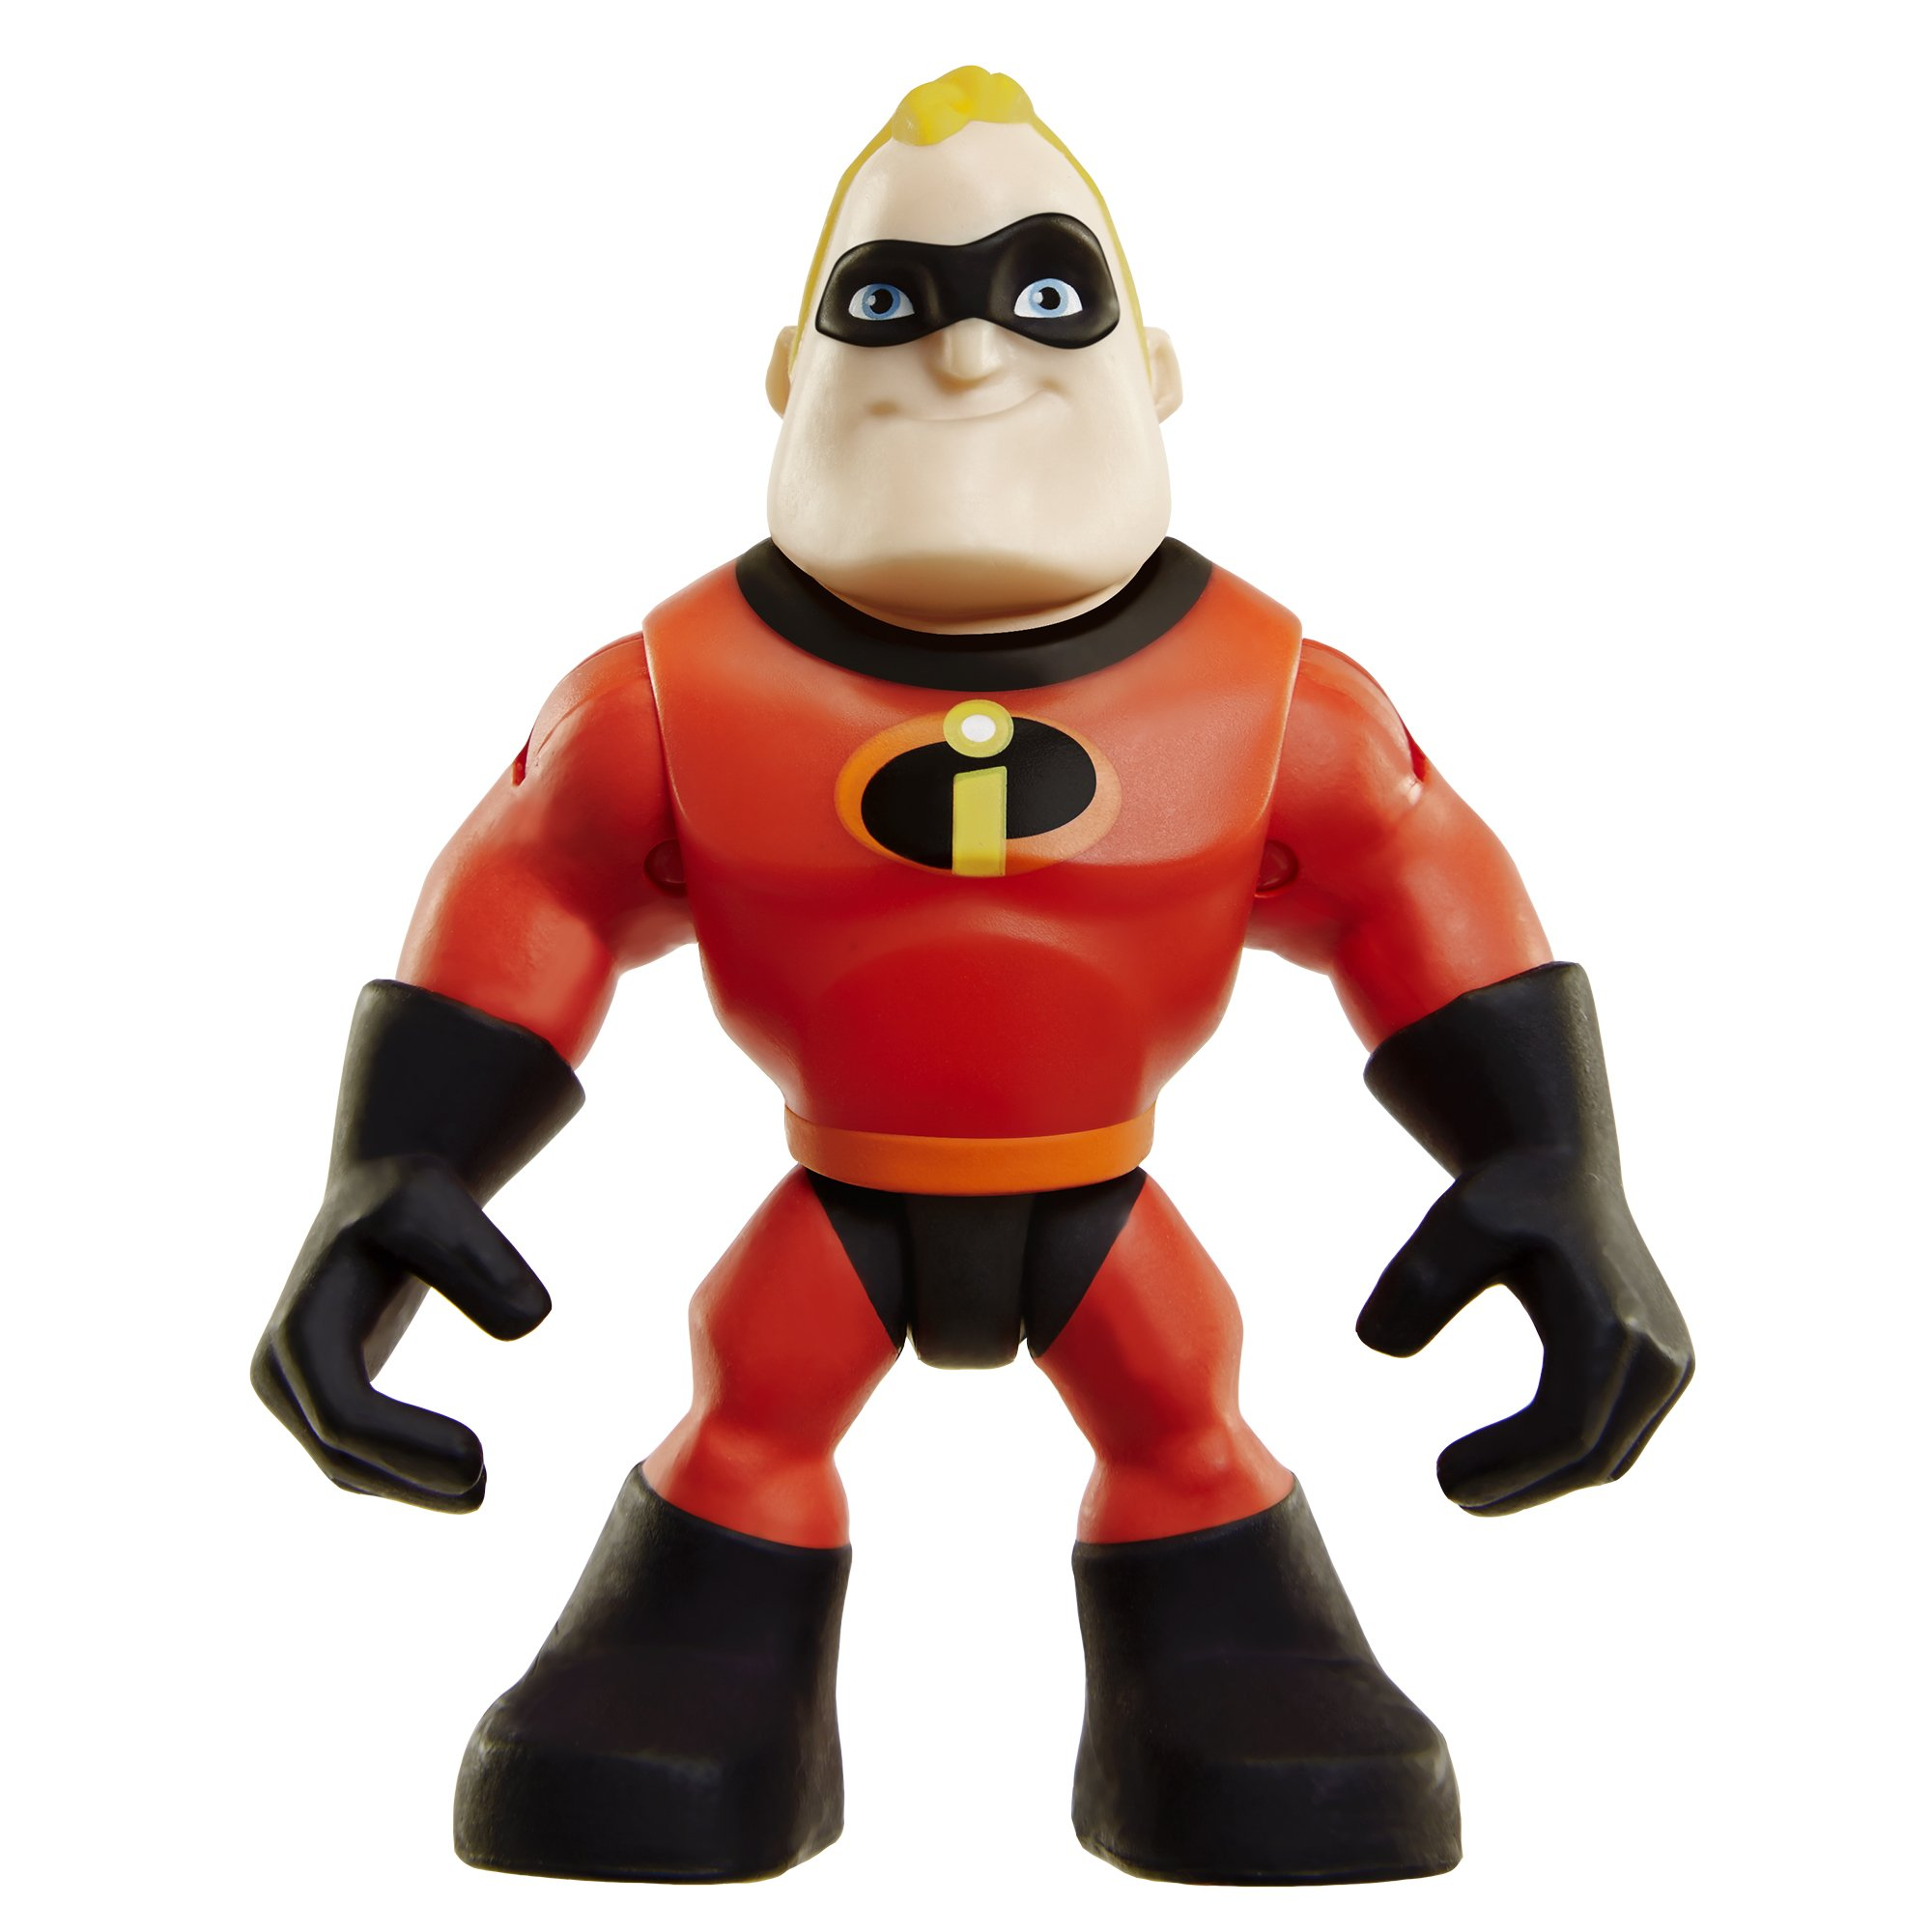 The Incredibles 2 Incredibile Car & Mr. Incredible Action Figure 2-Piece Set, Black Car and Red Mr. Incredible Figure, Medium by The Incredibles 2 (Image #10)